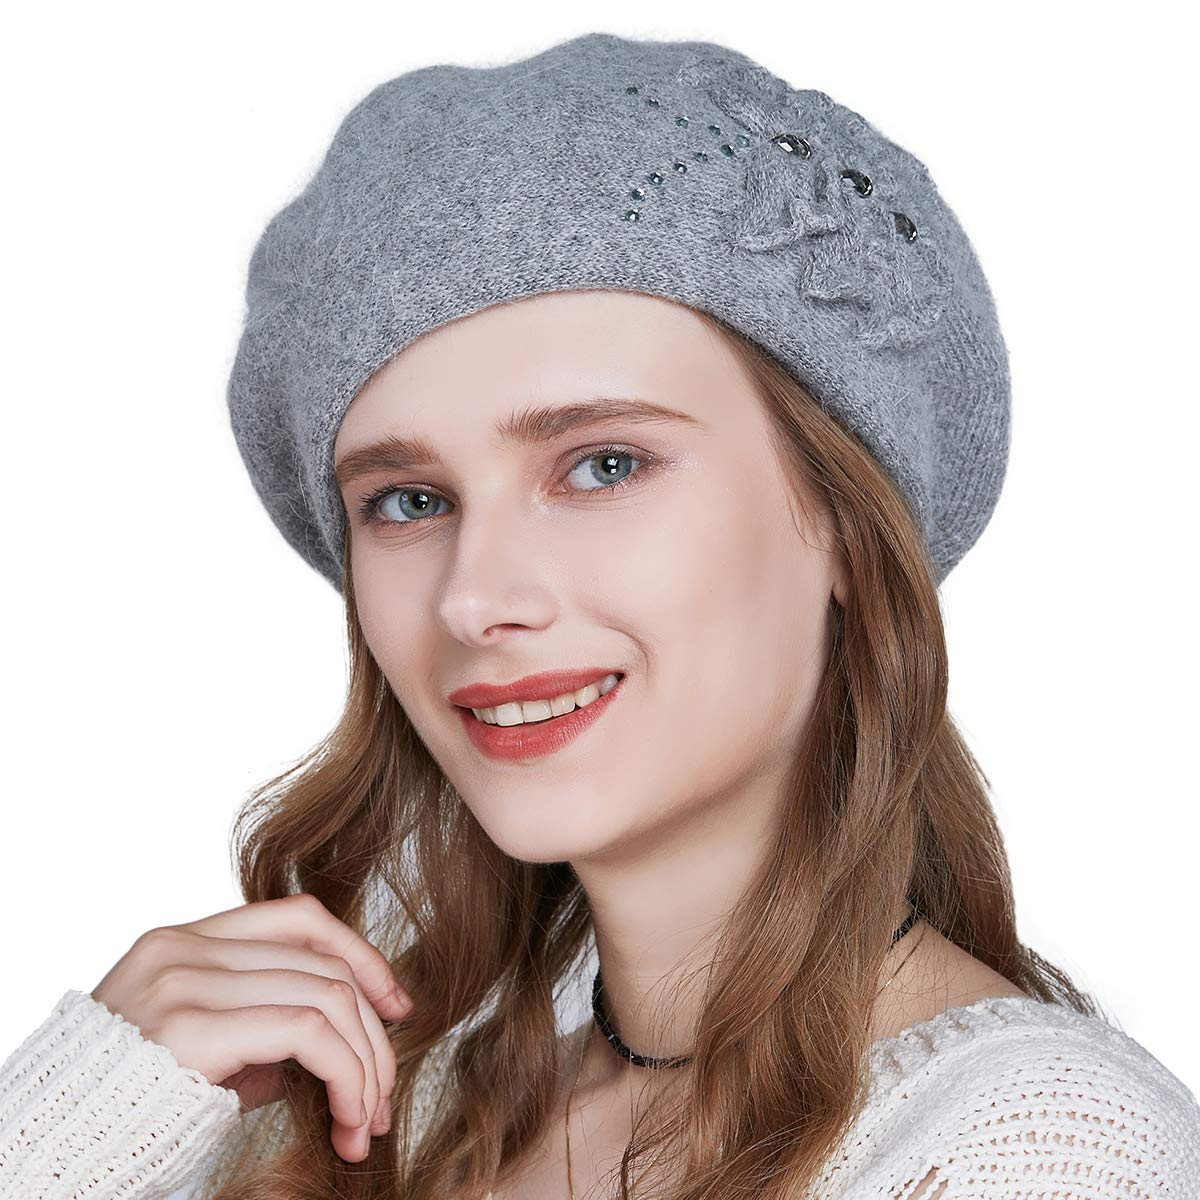 SOMALER Winter Beret Hats for Women French Angora Wool Beret Knit Beanie Lightweight Cap by SOMALER (Image #1)